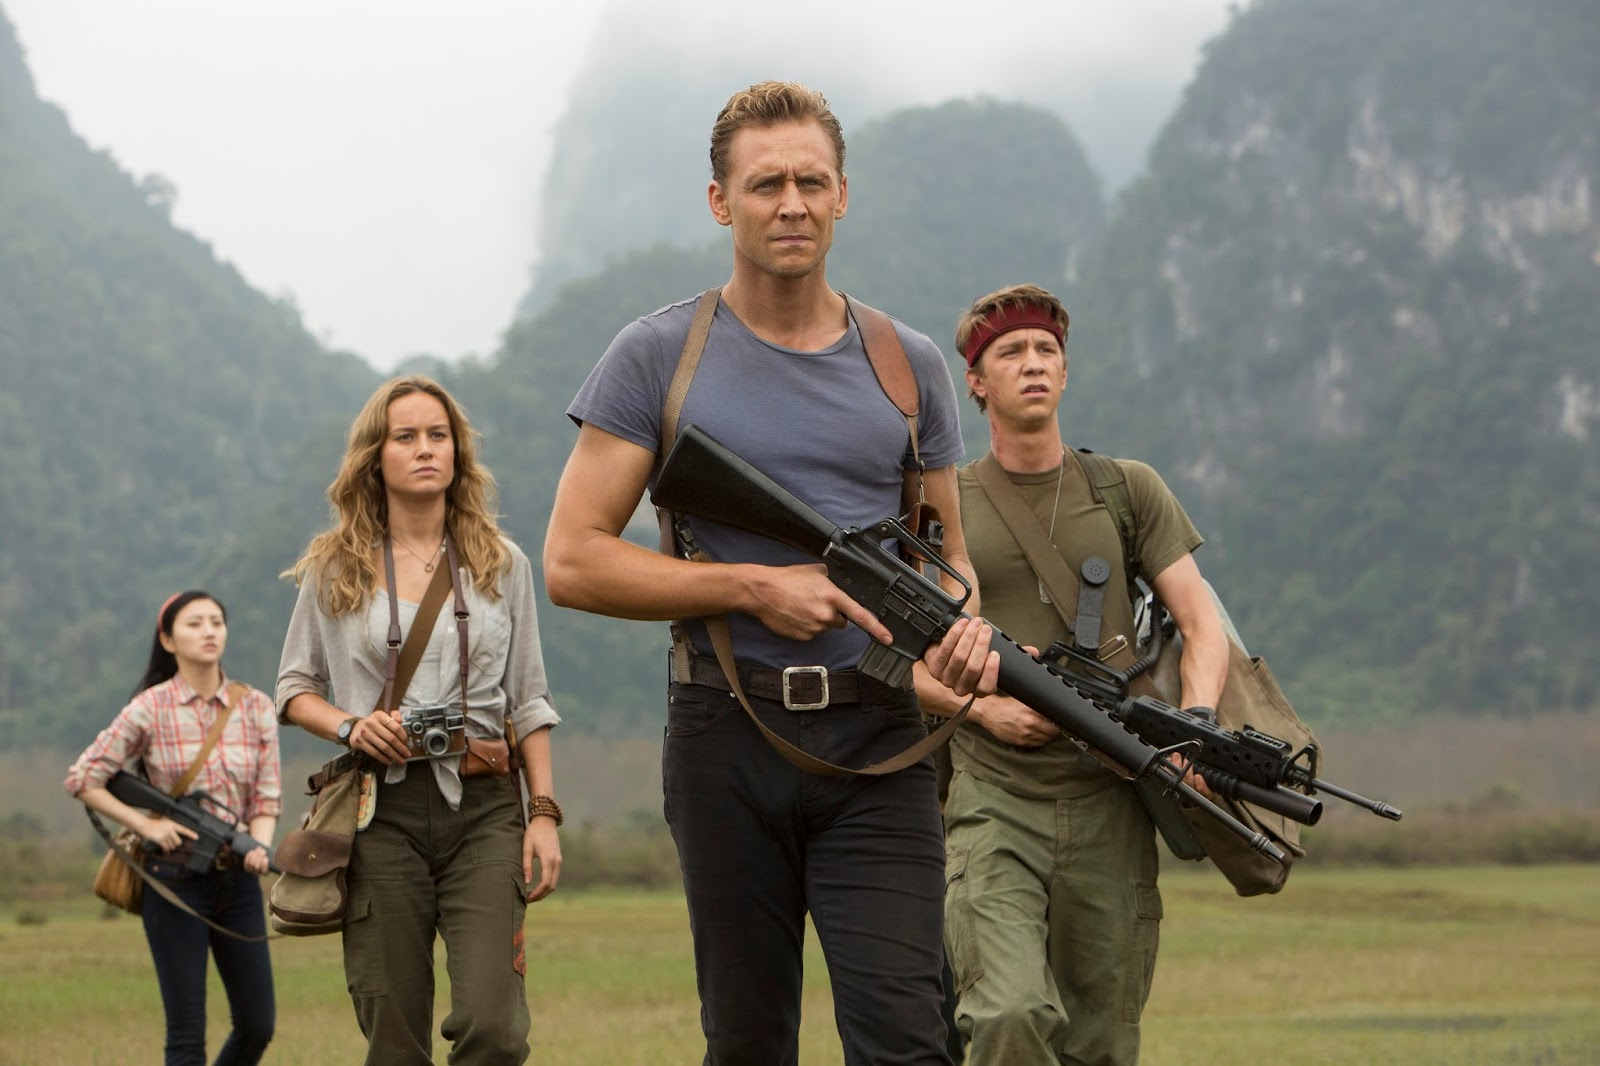 Tom Hiddleston (centre) and Brie Larson (second from left) star in Kong: Skull Island which was shot on location in Vietnam, Australia and Hawaii.